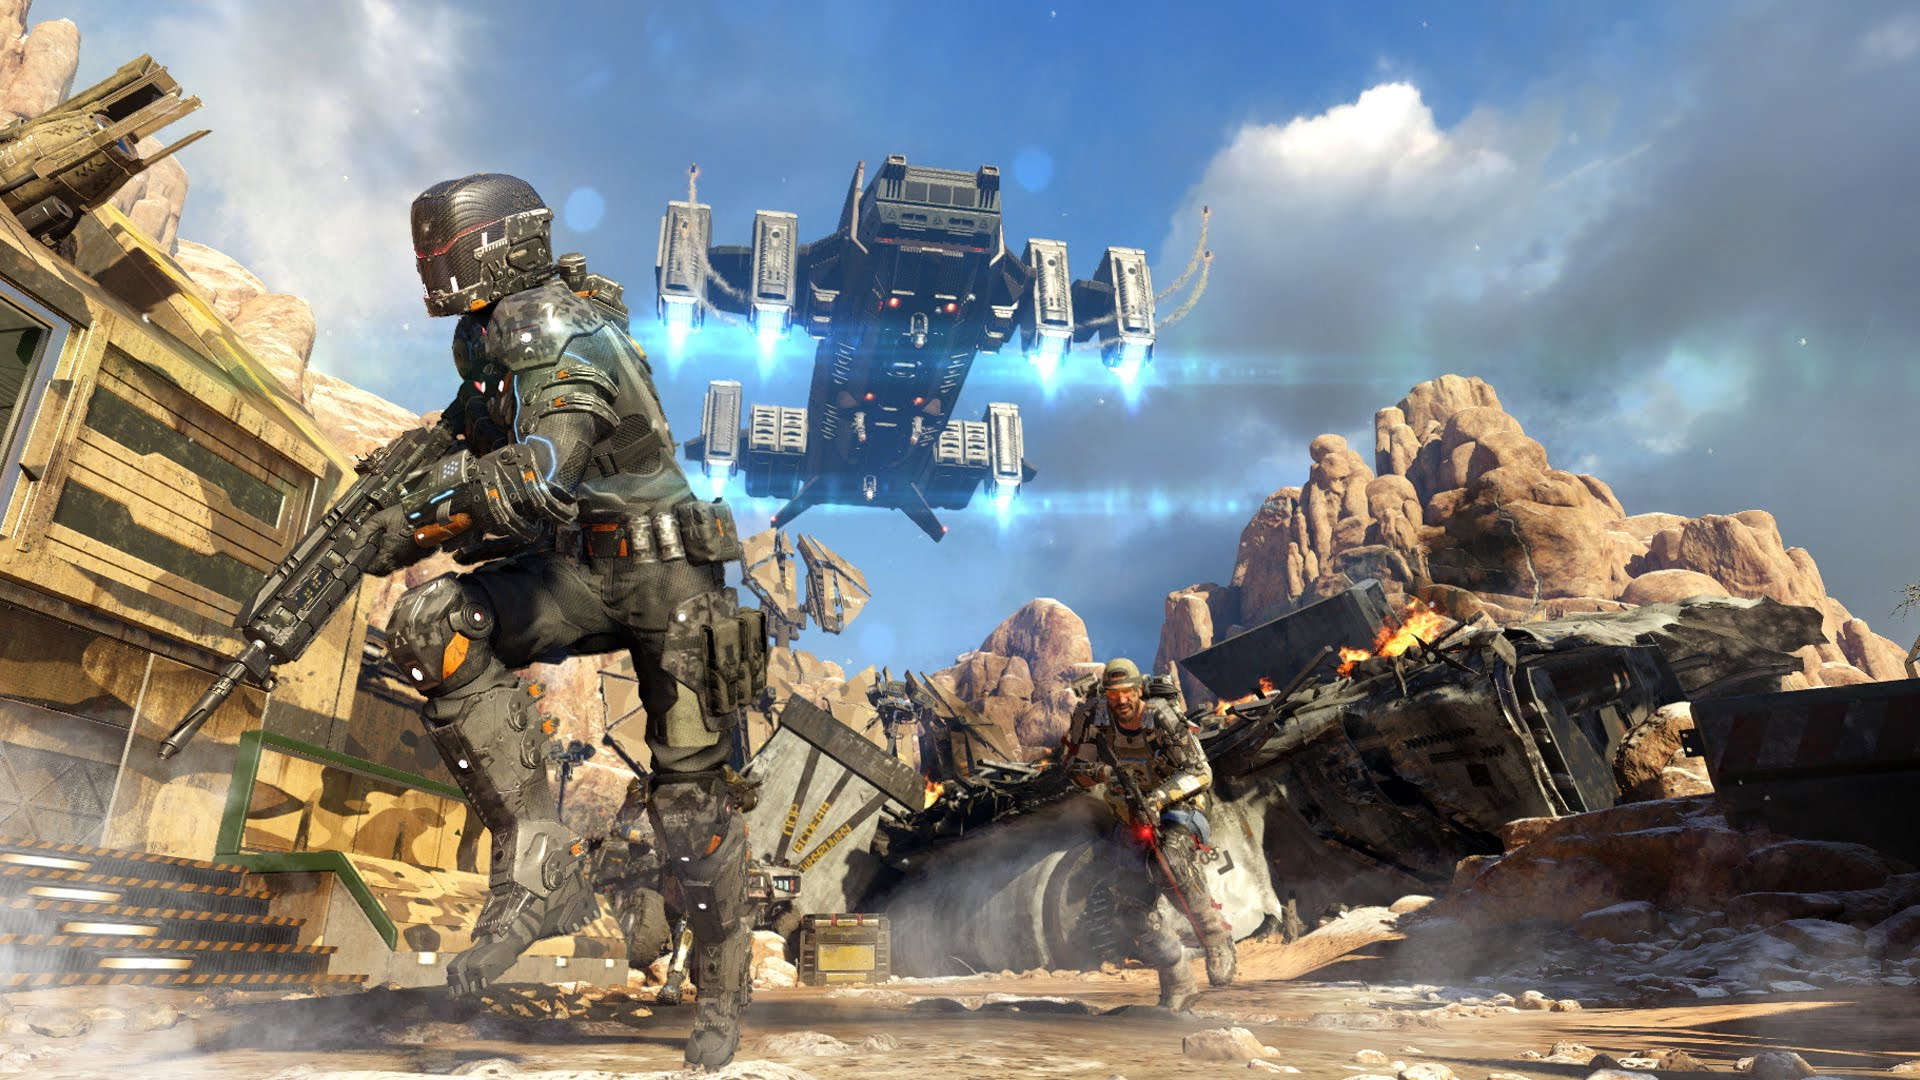 Free Download Call Of Duty Black Ops 3 Wallpapers High Quality